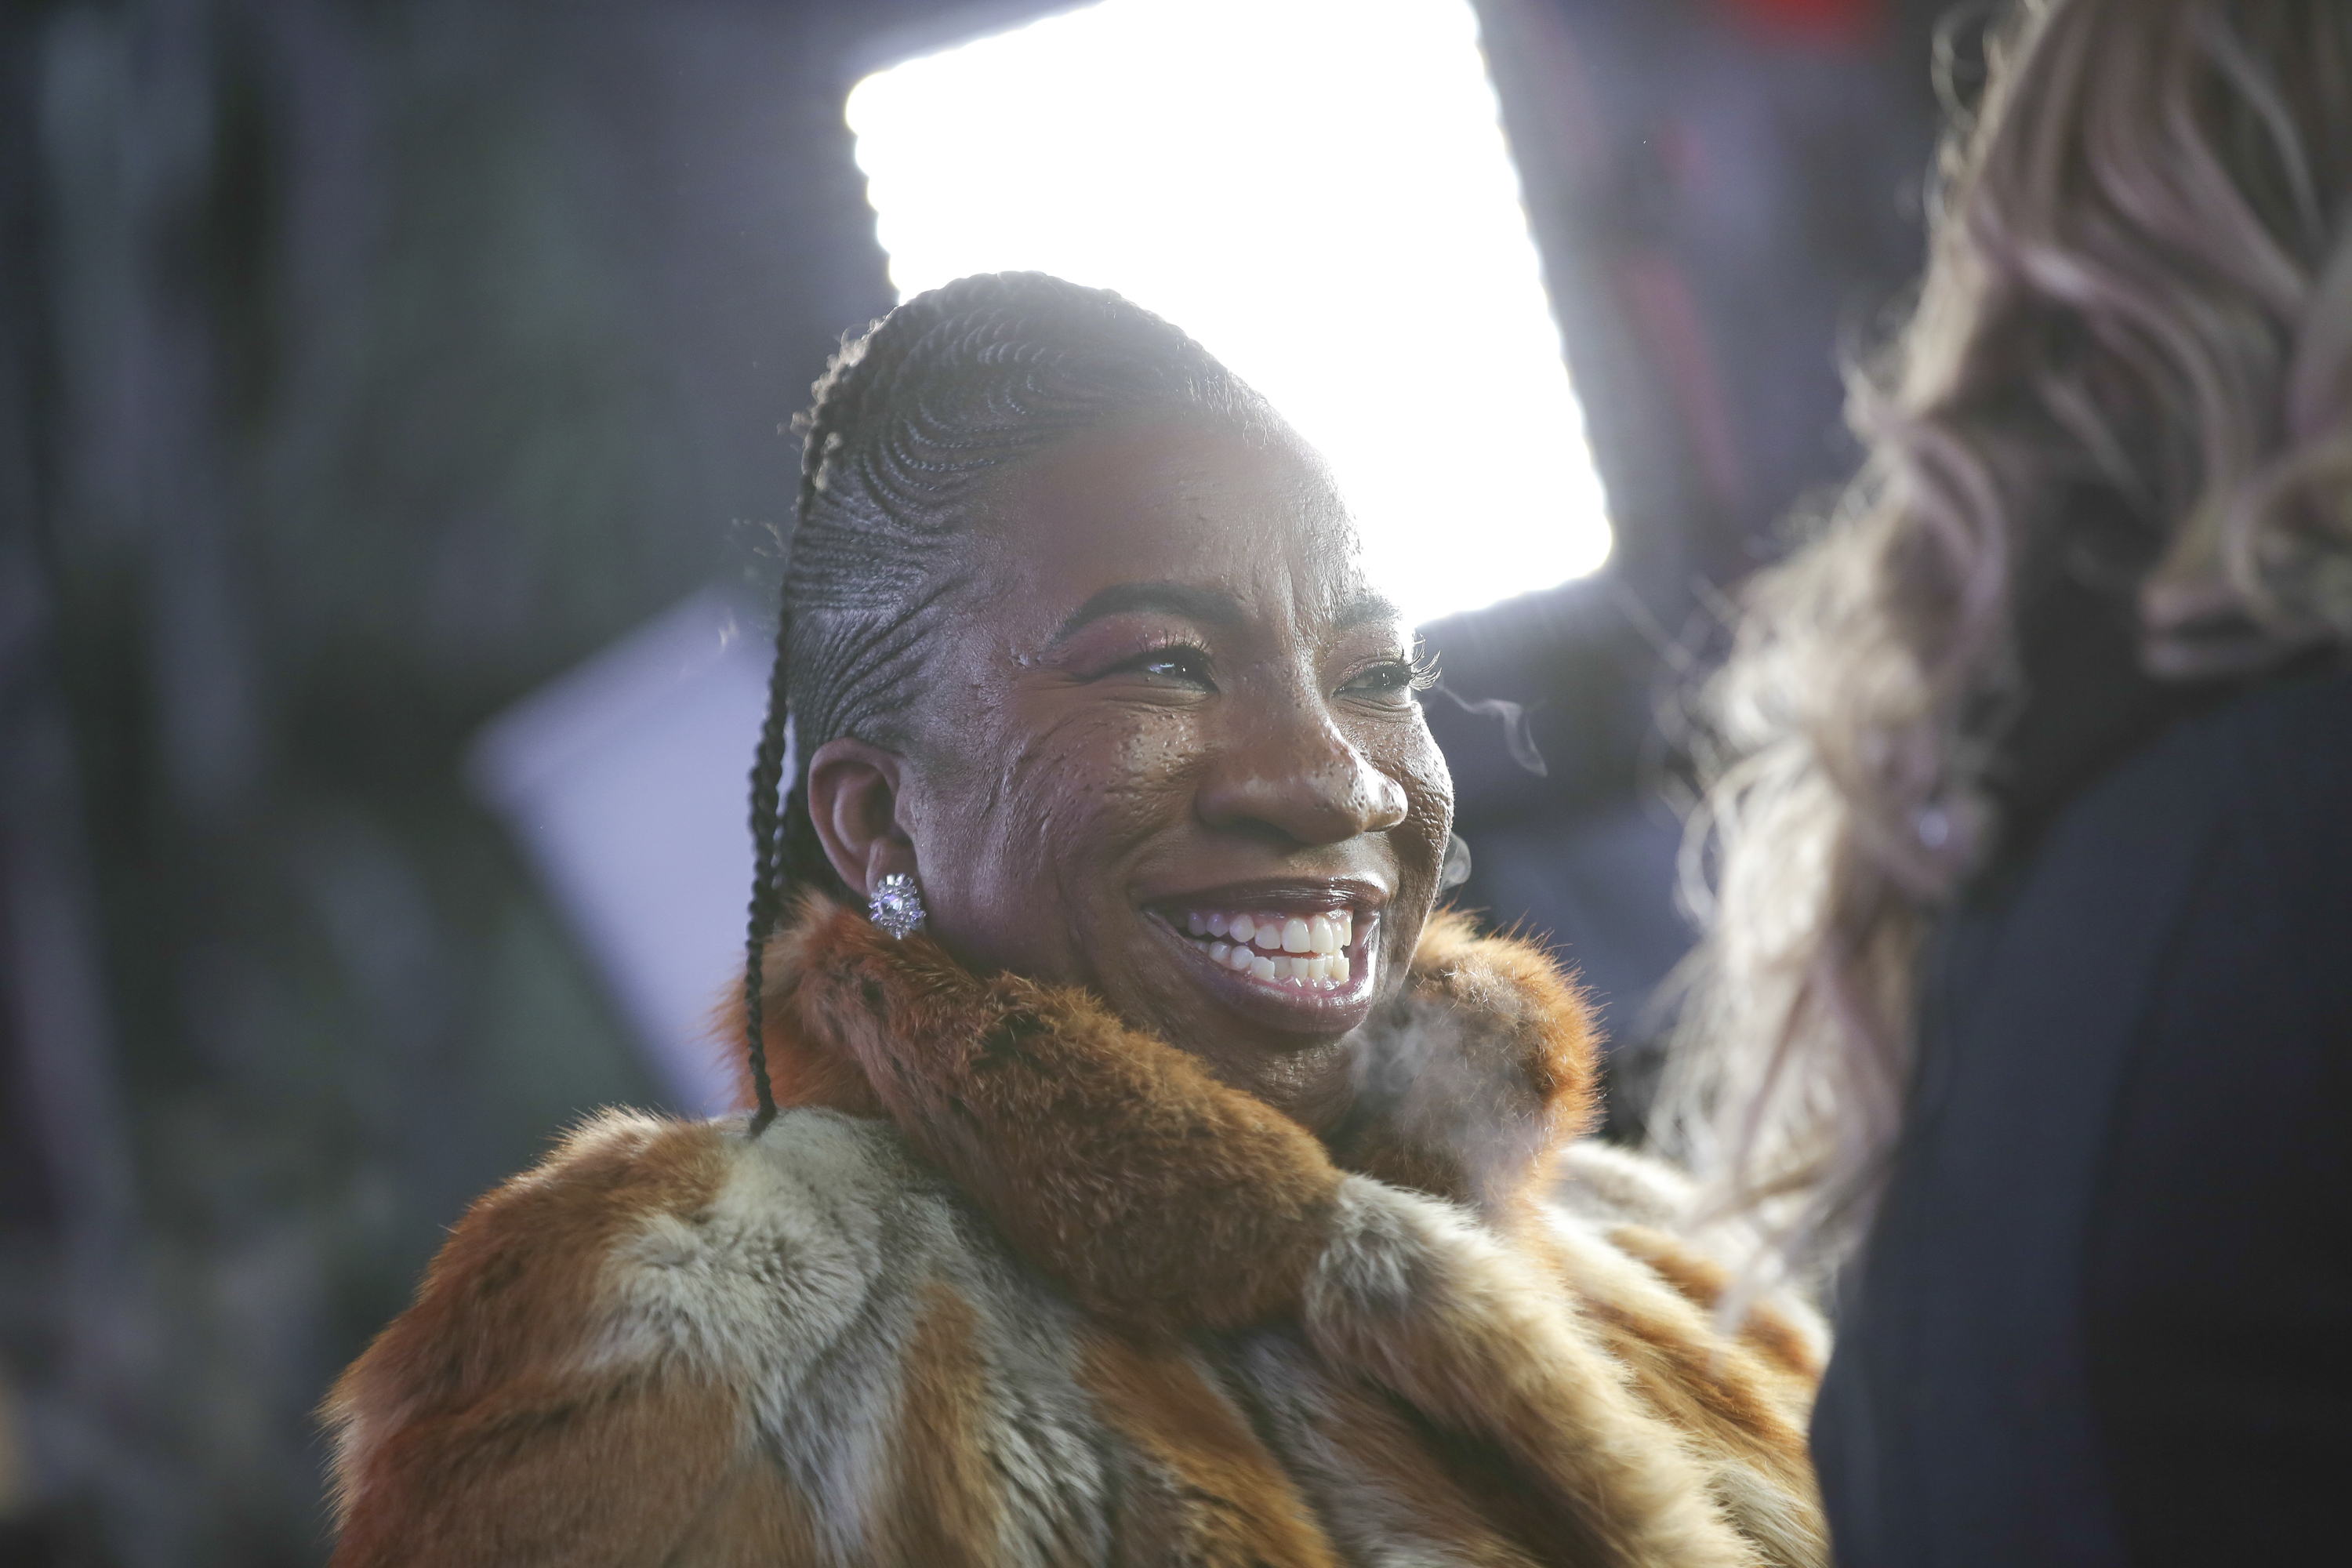 <div class='meta'><div class='origin-logo' data-origin='AP'></div><span class='caption-text' data-credit='Brent N. Clarke/Invision/AP'>Activist Tarana Burke speaks on stage at the New Year's Eve celebration in Times Square on Sunday, Dec. 31, 2017, in New York. (Photo by Brent N. Clarke/Invision/AP)</span></div>